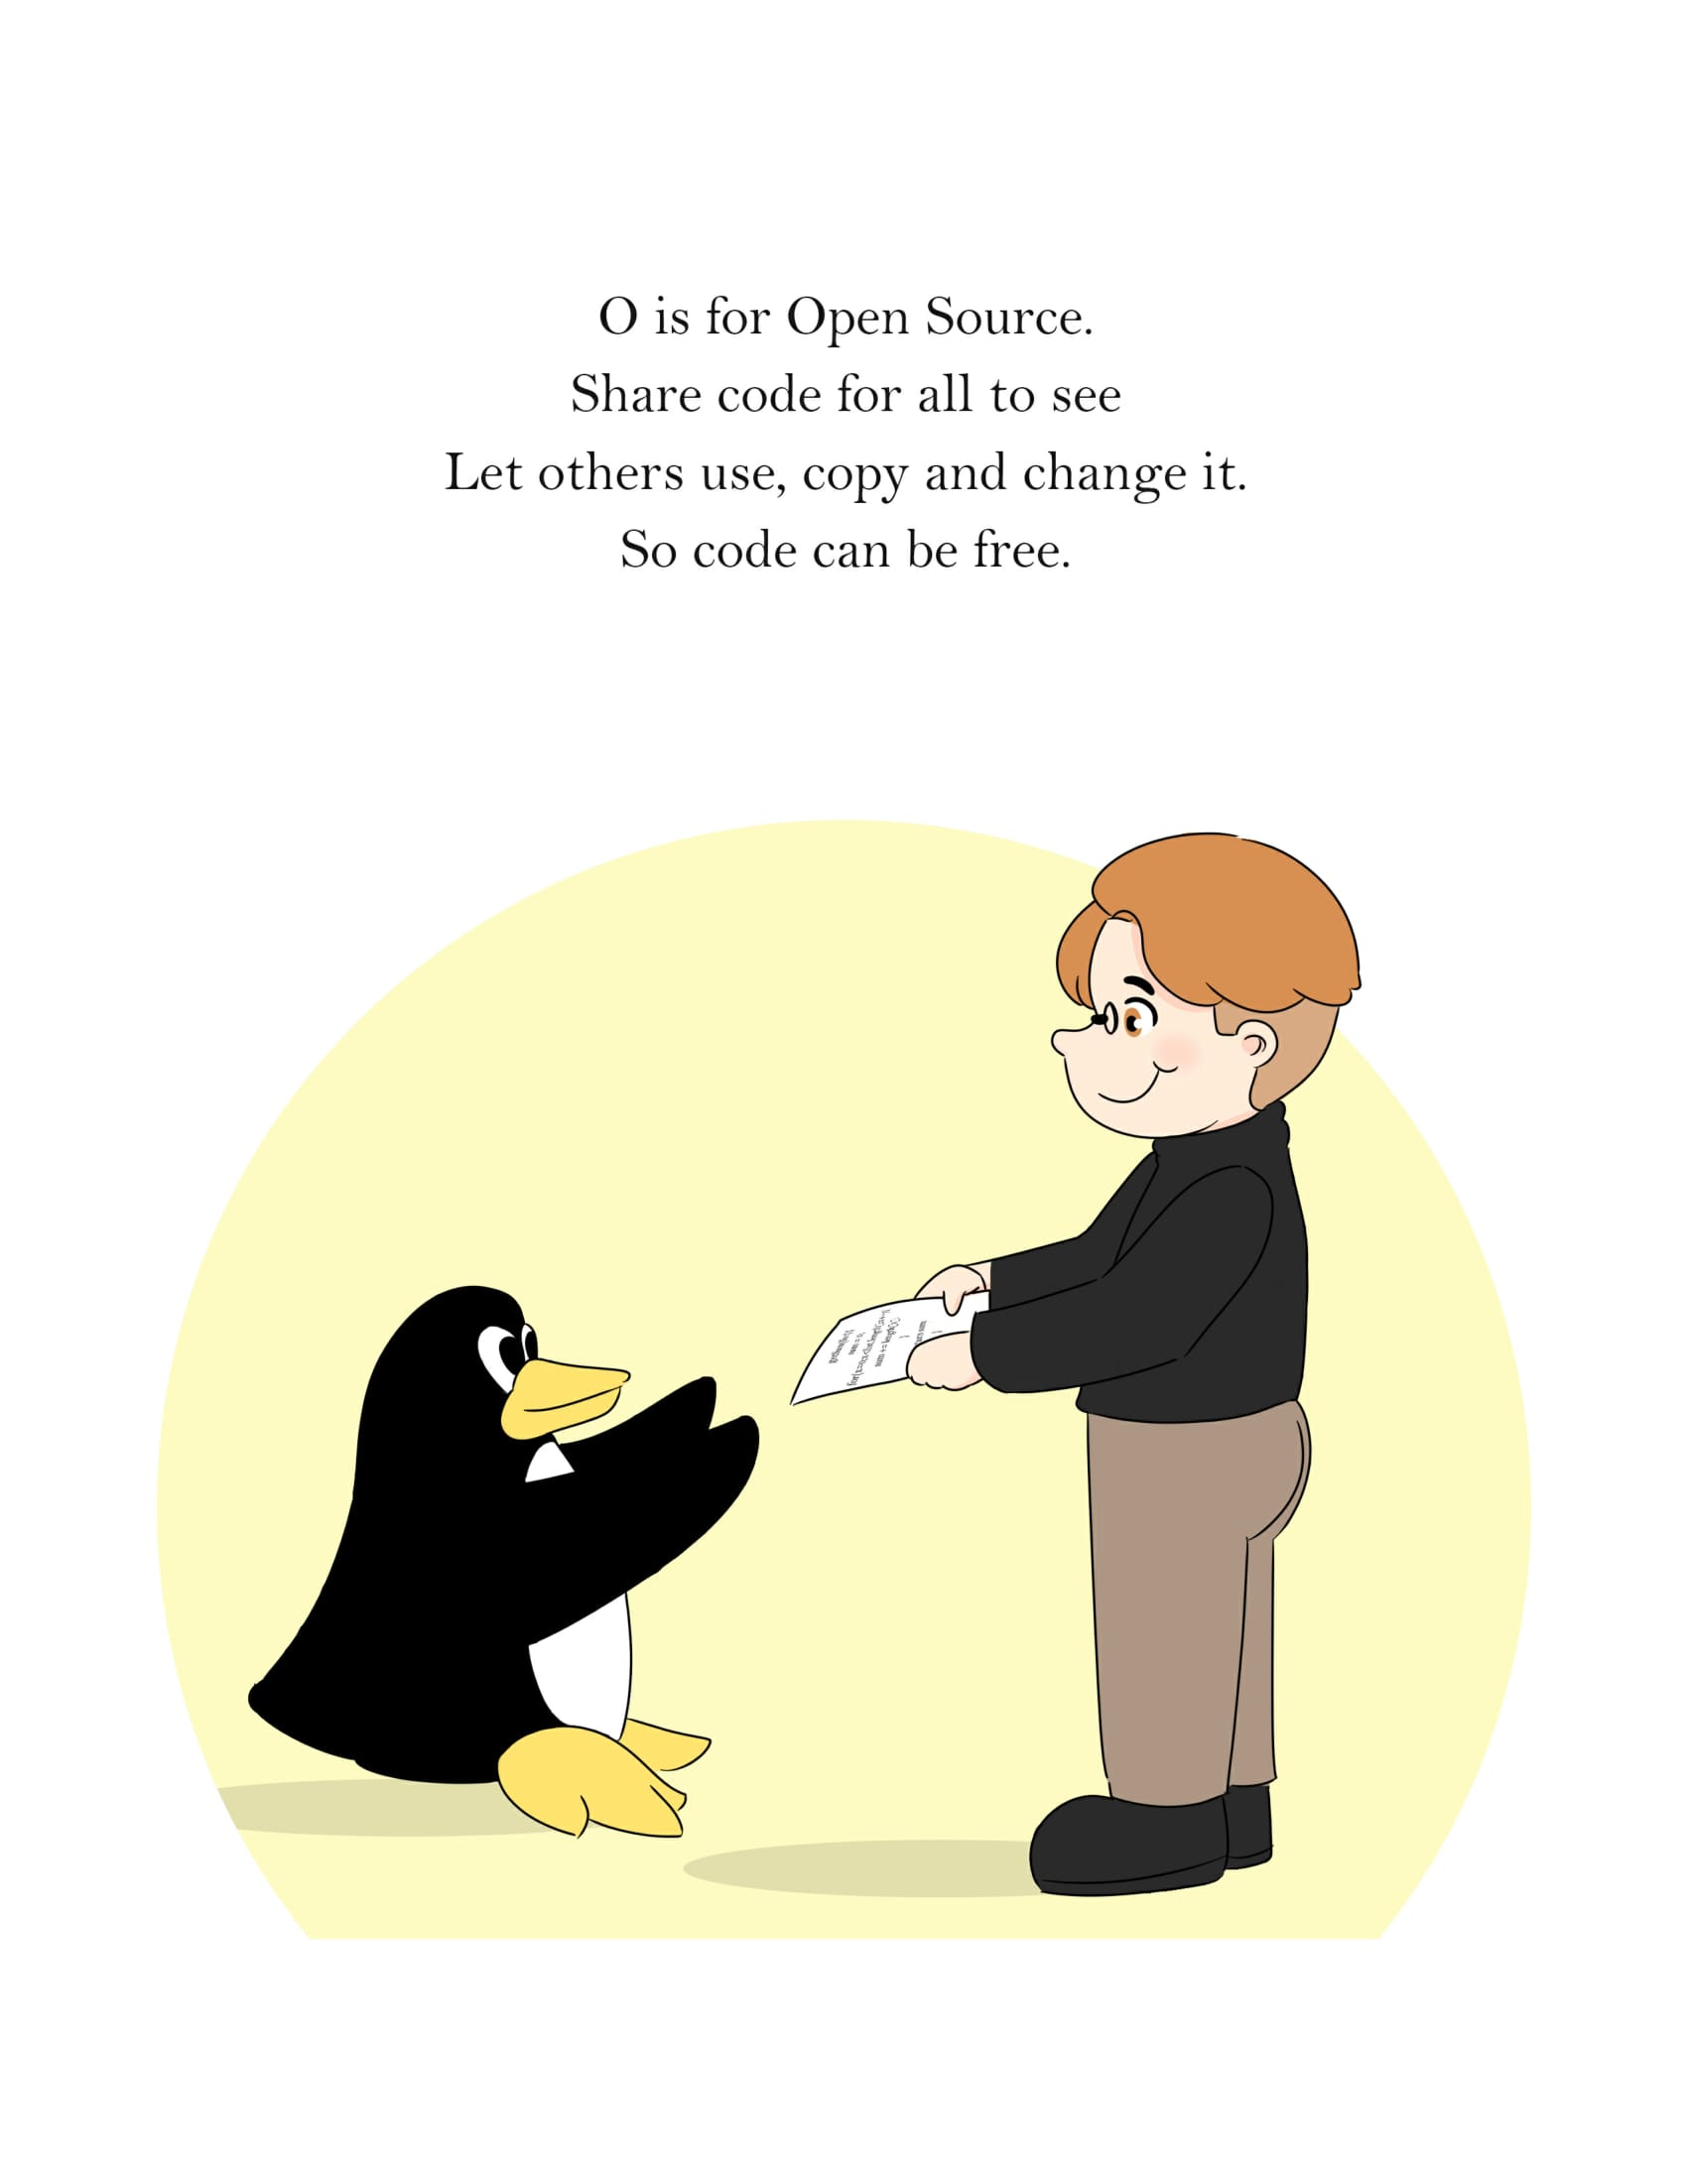 O is for Open Source